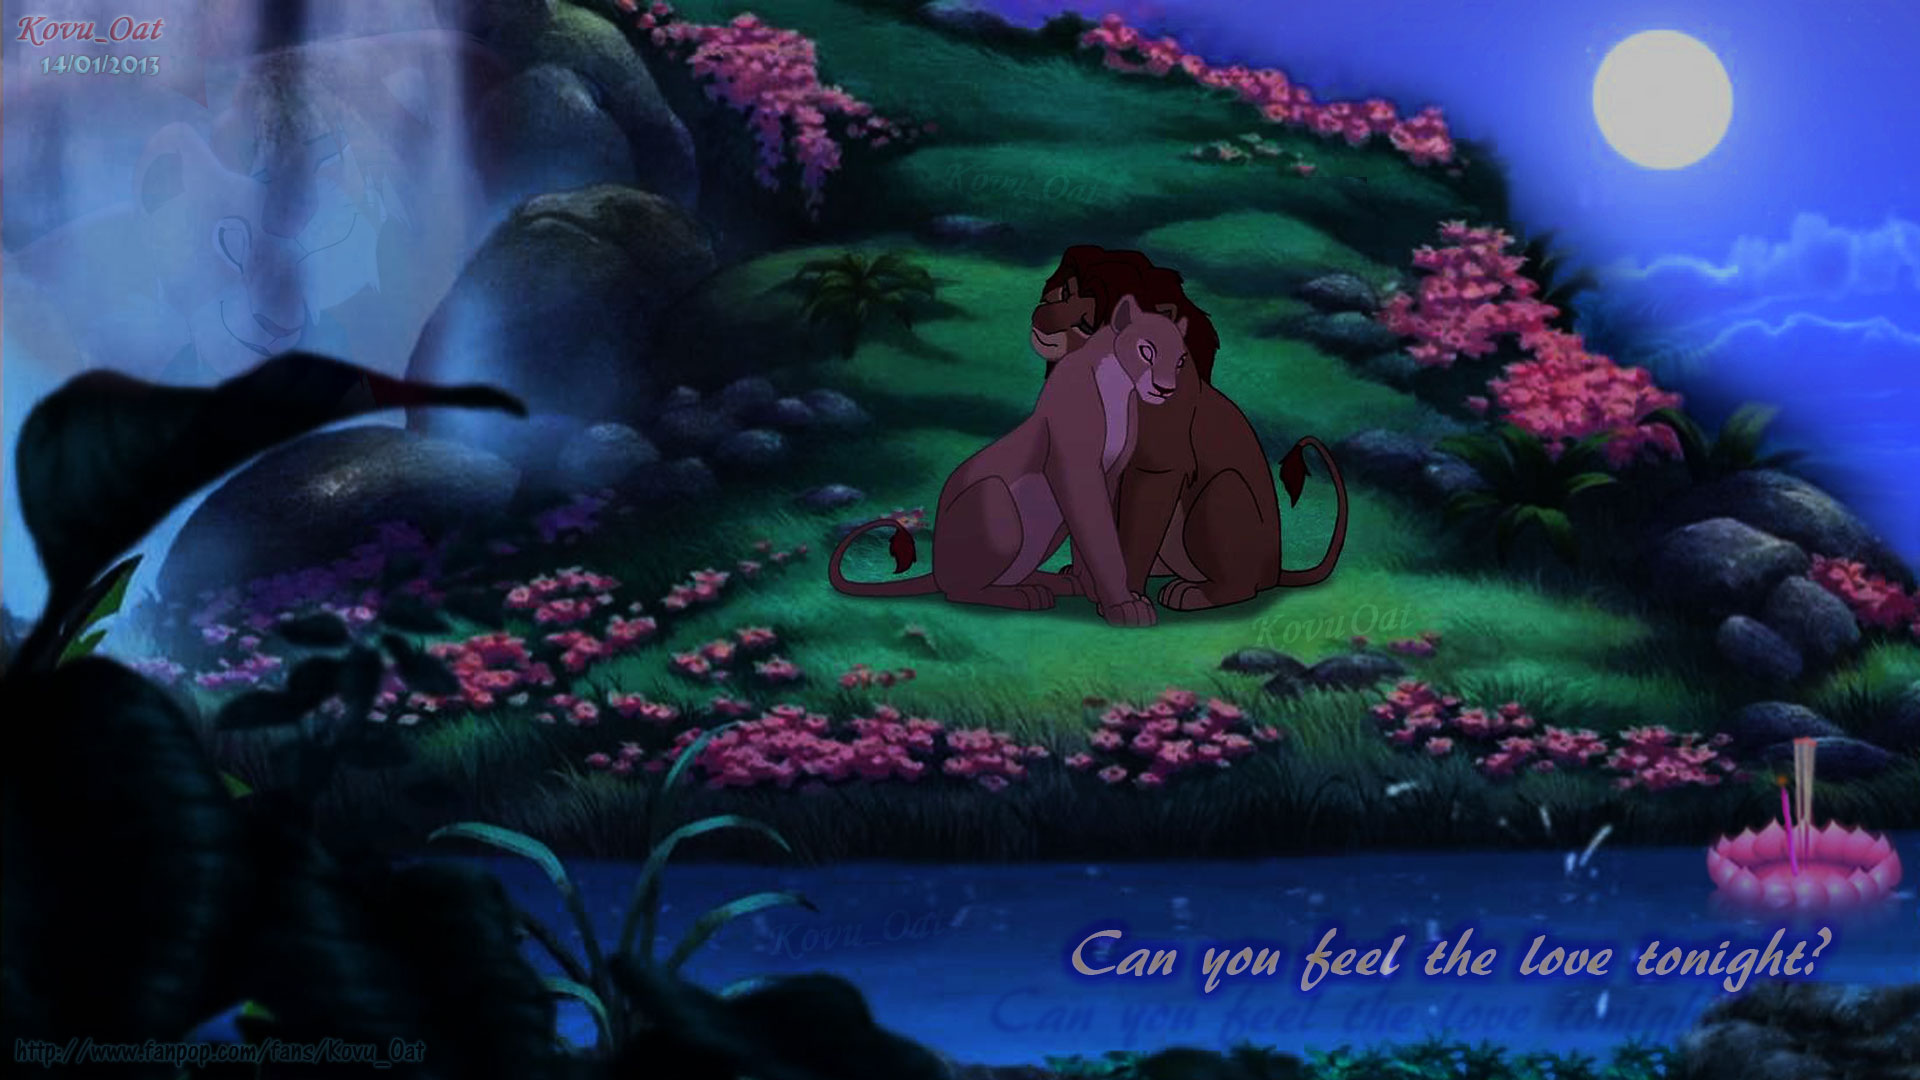 Simba Nala feel Love tonight wallpaper HD - The Lion King ...